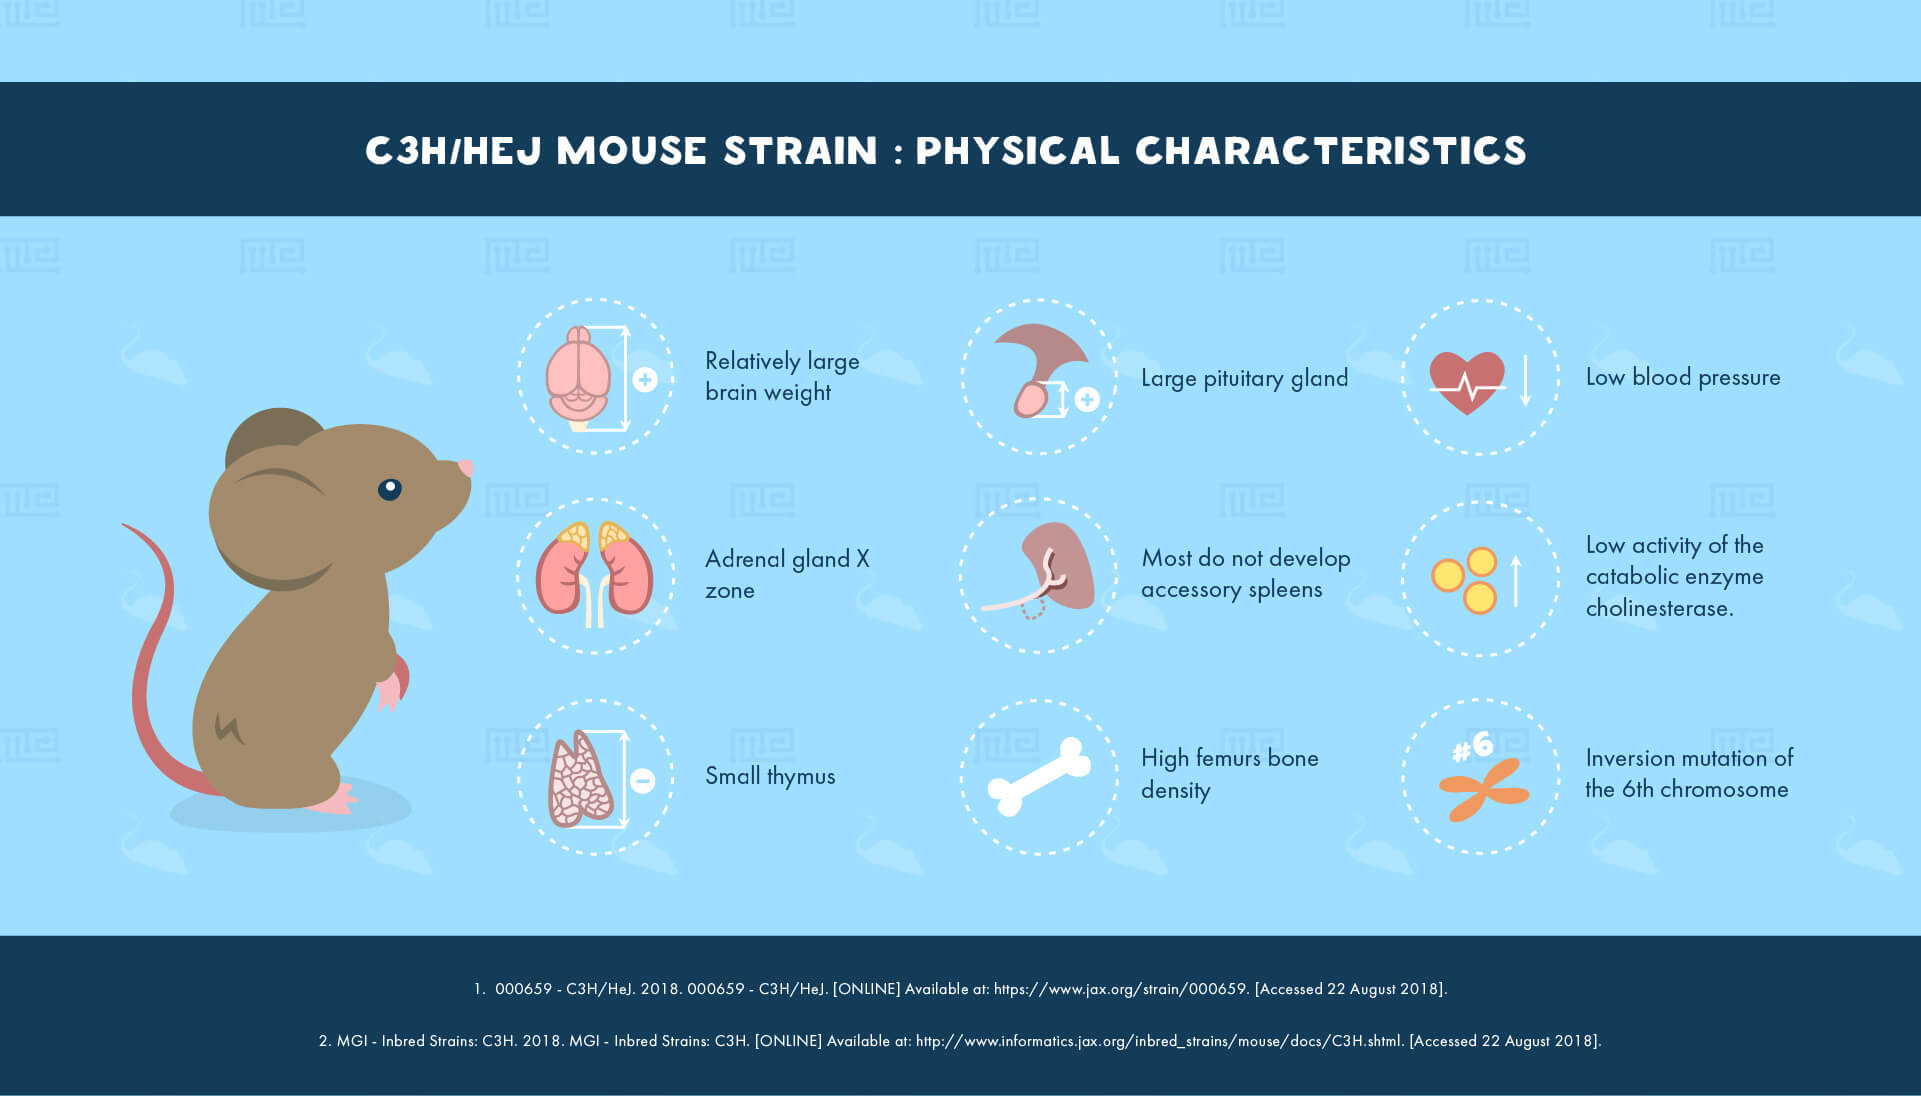 C3H/HeJ Mouse Strain : Physical Characteristics